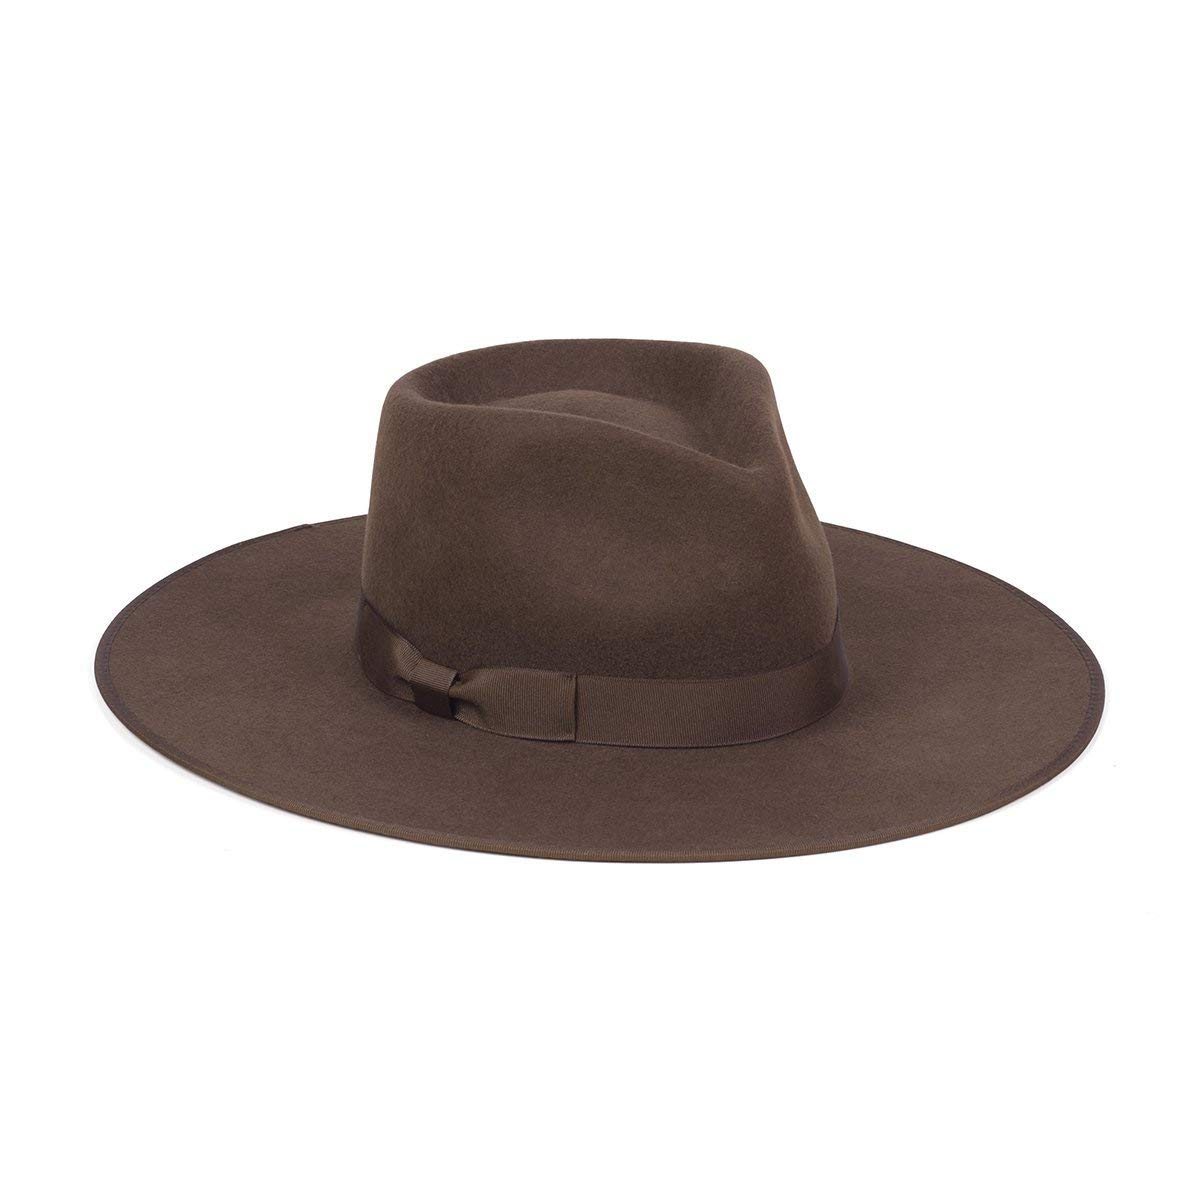 Lack of Color Women's Coco Rancher Wool Fedora Hat (Chocolate Brown, Small (55cm)) by Lack of Color